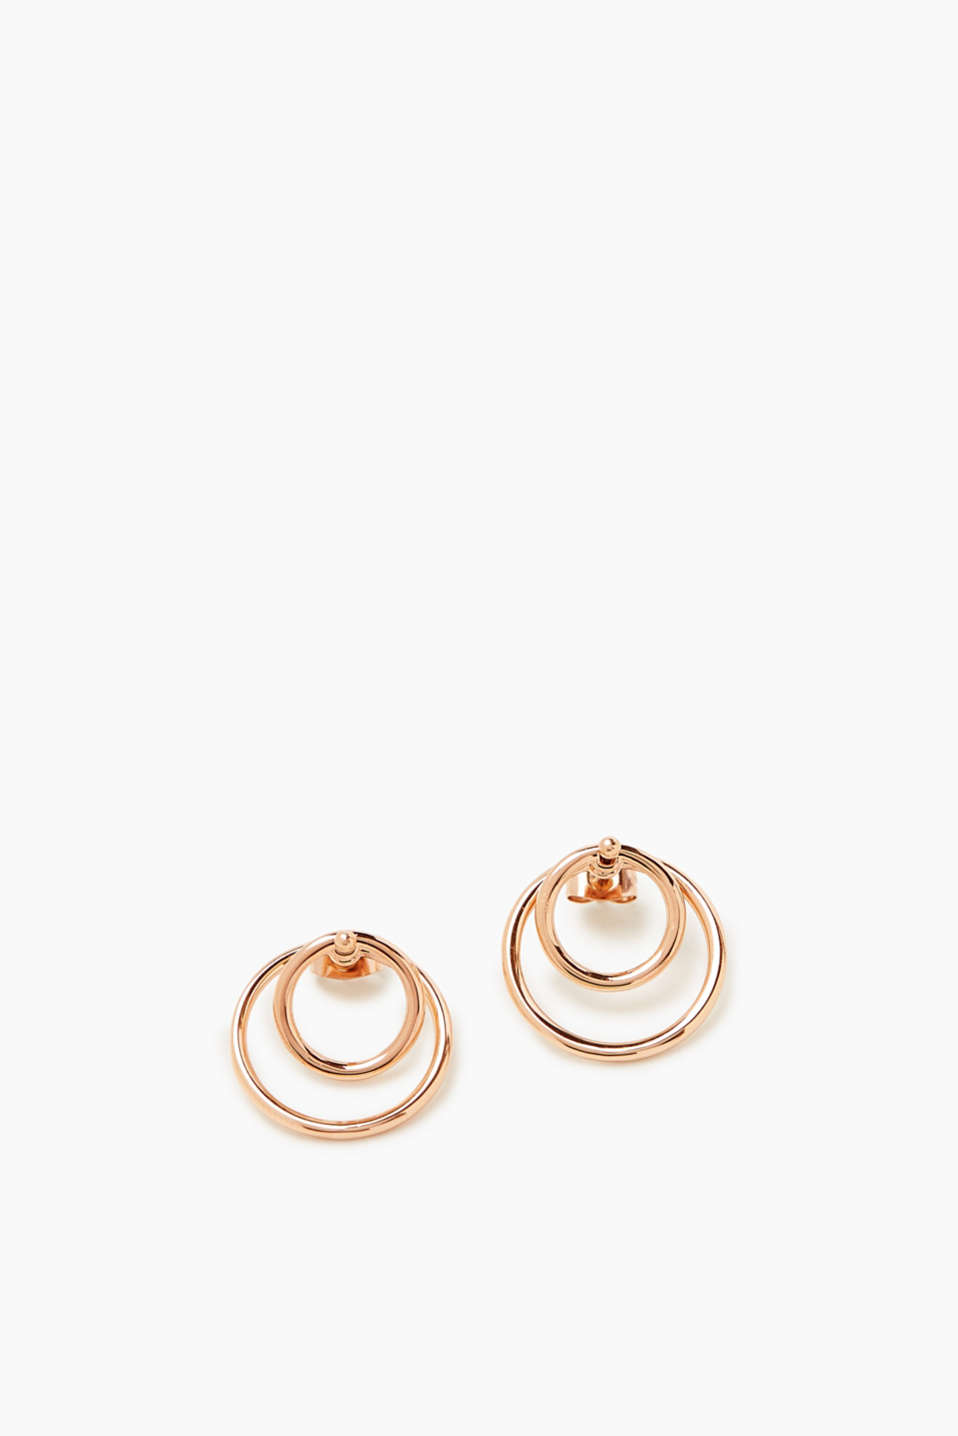 Esprit - Fine rose gold stainless steel earrings